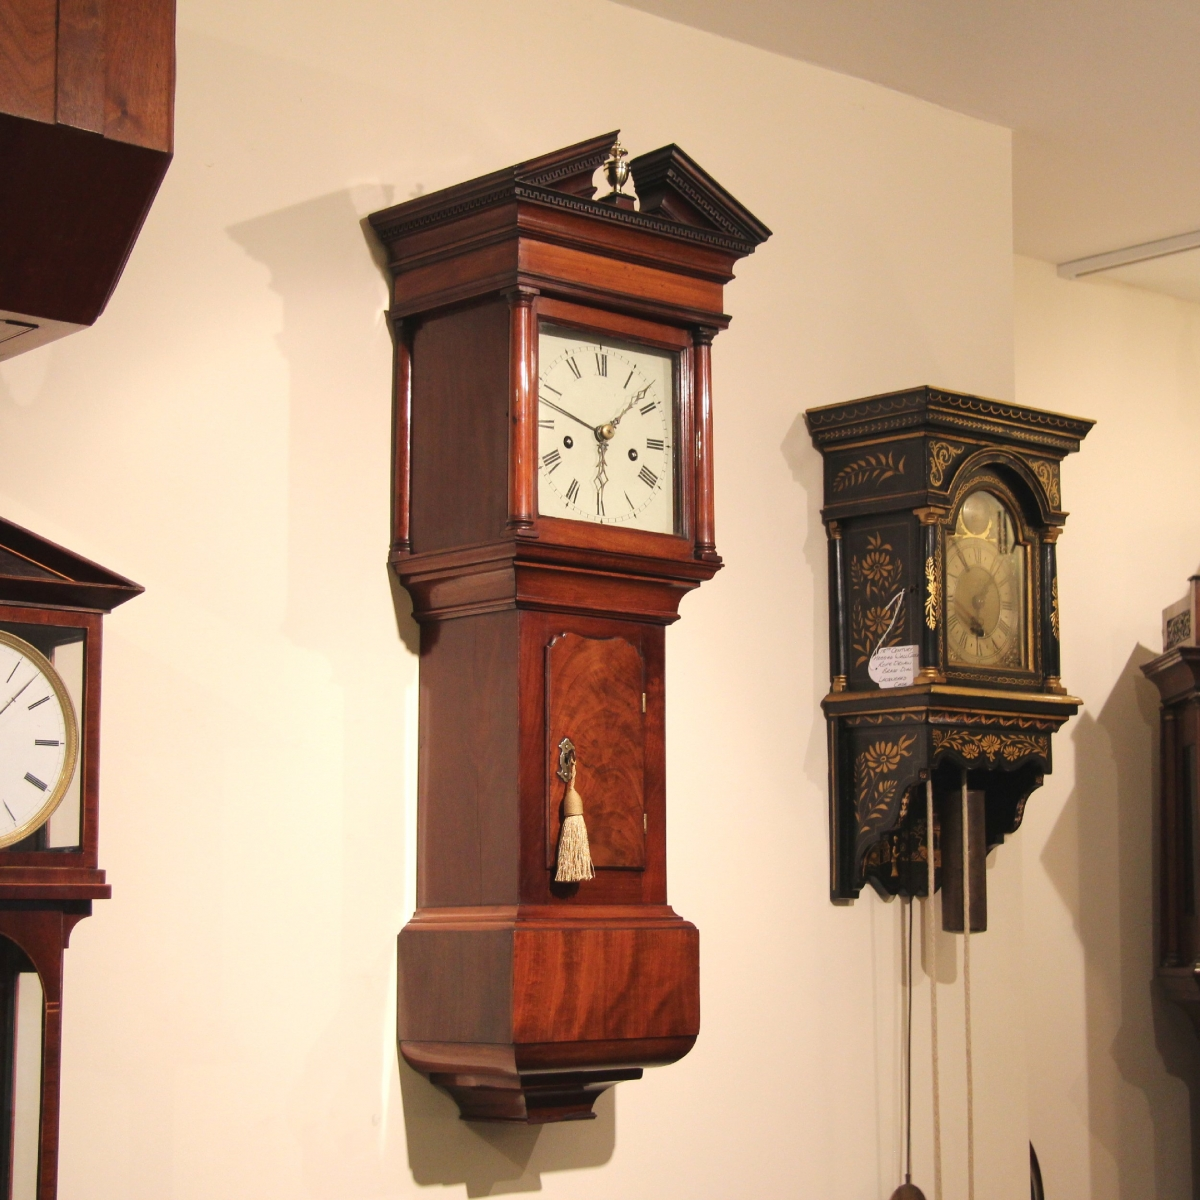 Rare and good hooded trunk wall clock for sale rare and small hooded trunk wall clock for sale amipublicfo Images